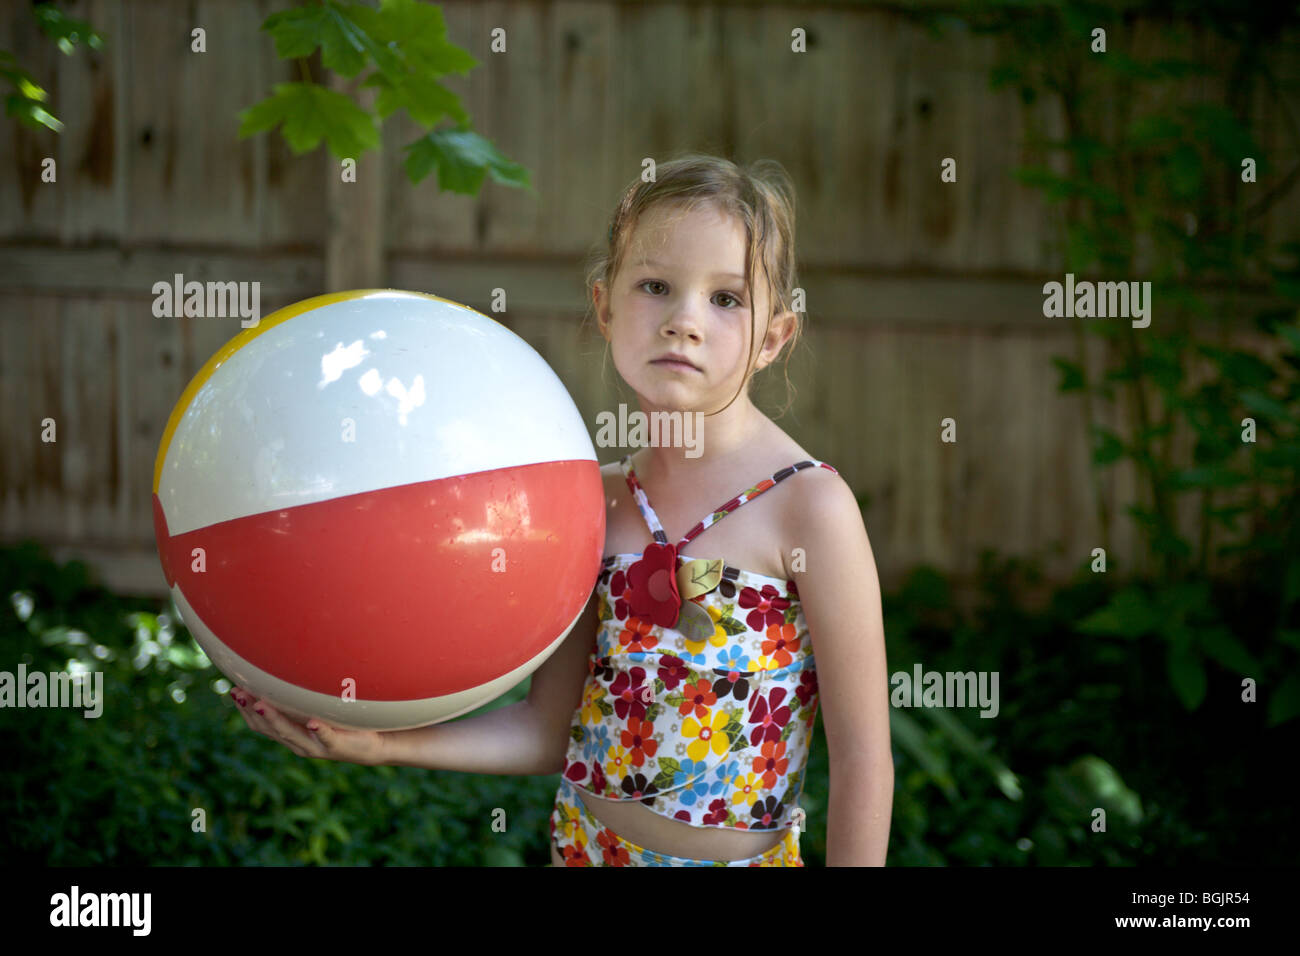 a bored young girl holding beach ball wearing a bathing suit in summer - Stock Image